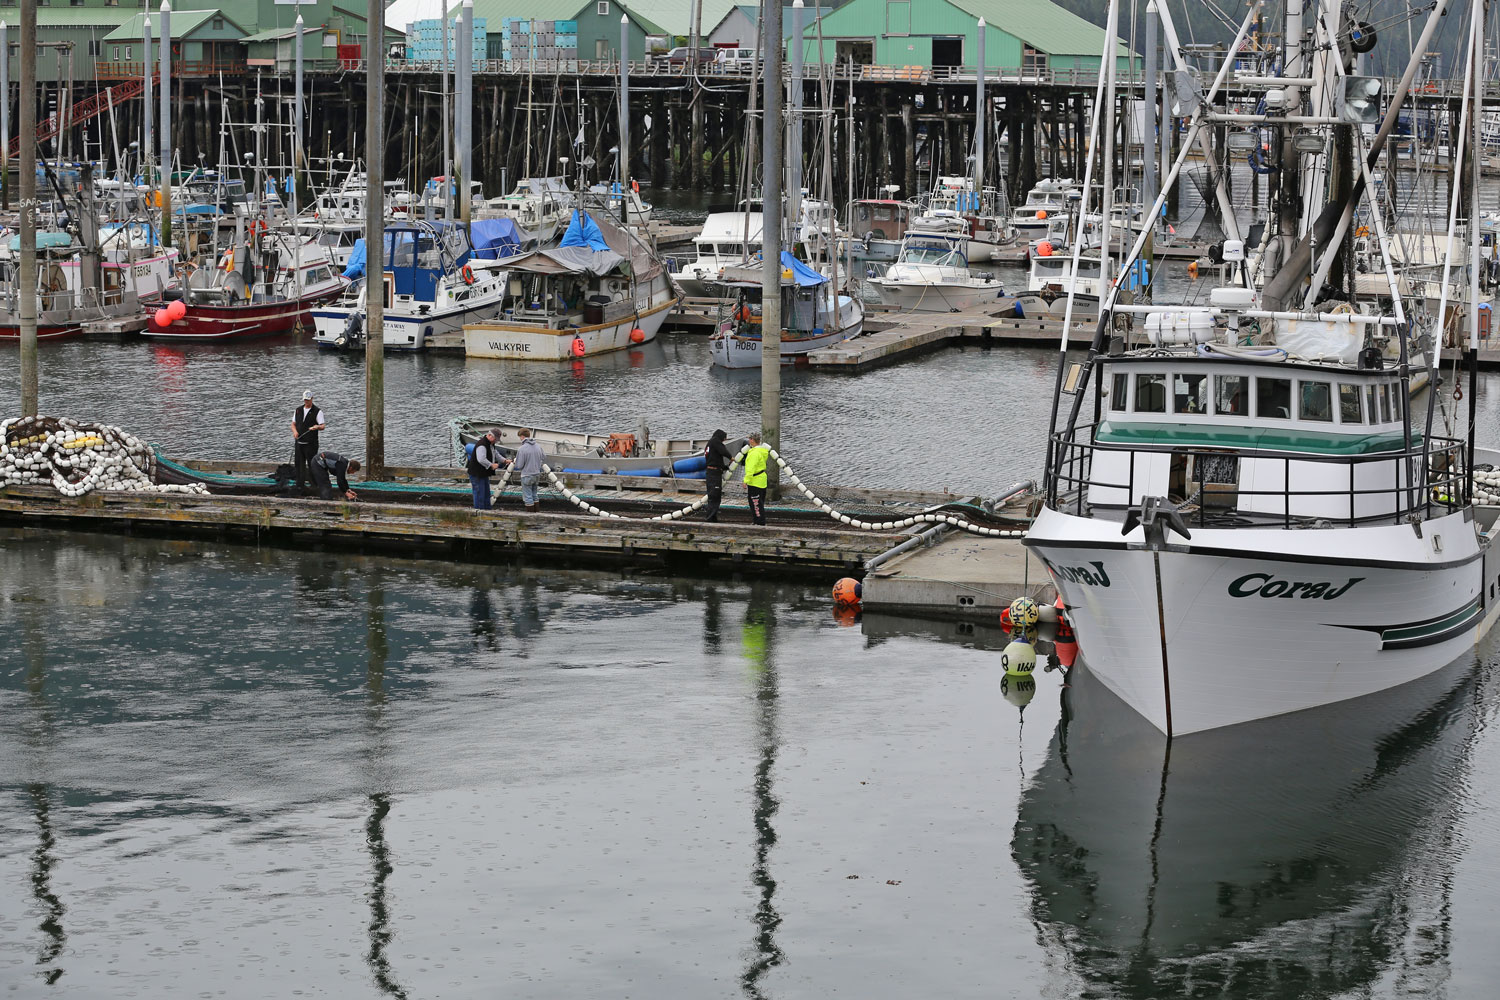 The crew of the Cora J ignores the rain and keeps working on the net.